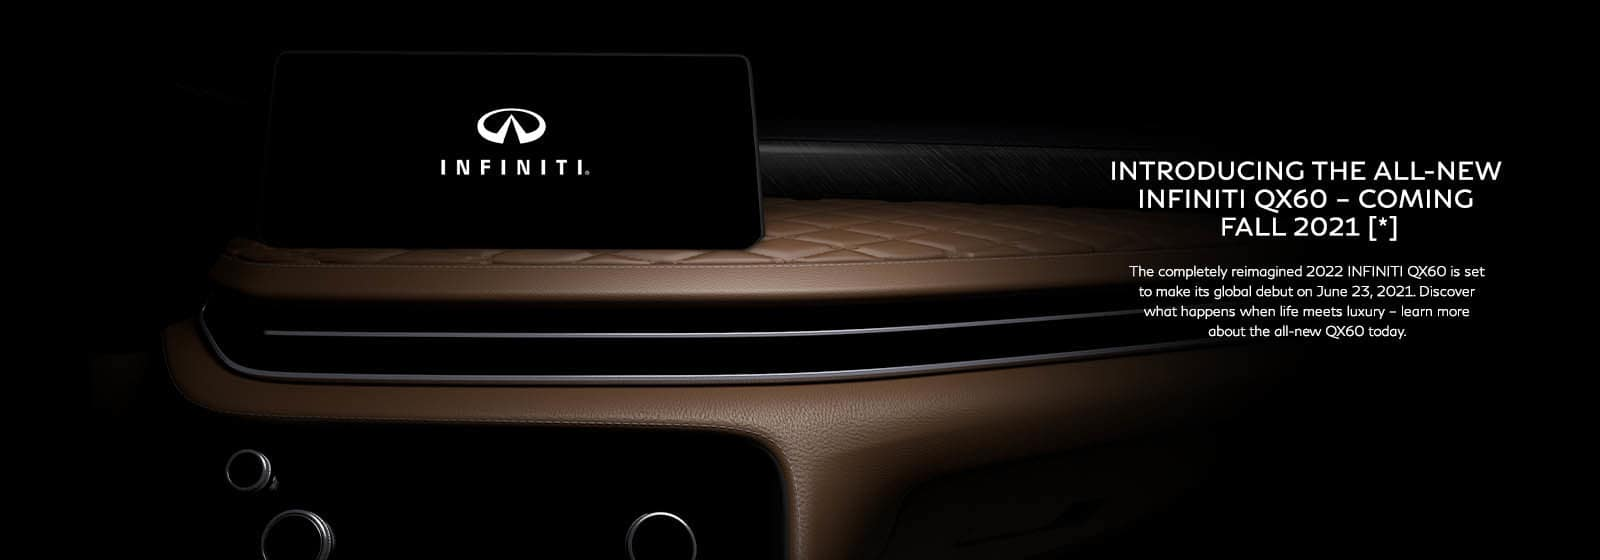 Introducing the all-new INFINITI QX60 - coming Fall 2021 [*} The completely reimagined 2022 INFINITI QX60 is set to make its global debut on June 23, 2021. Discover what happens when life meets luxury - learn more about the all-new QX60 today.